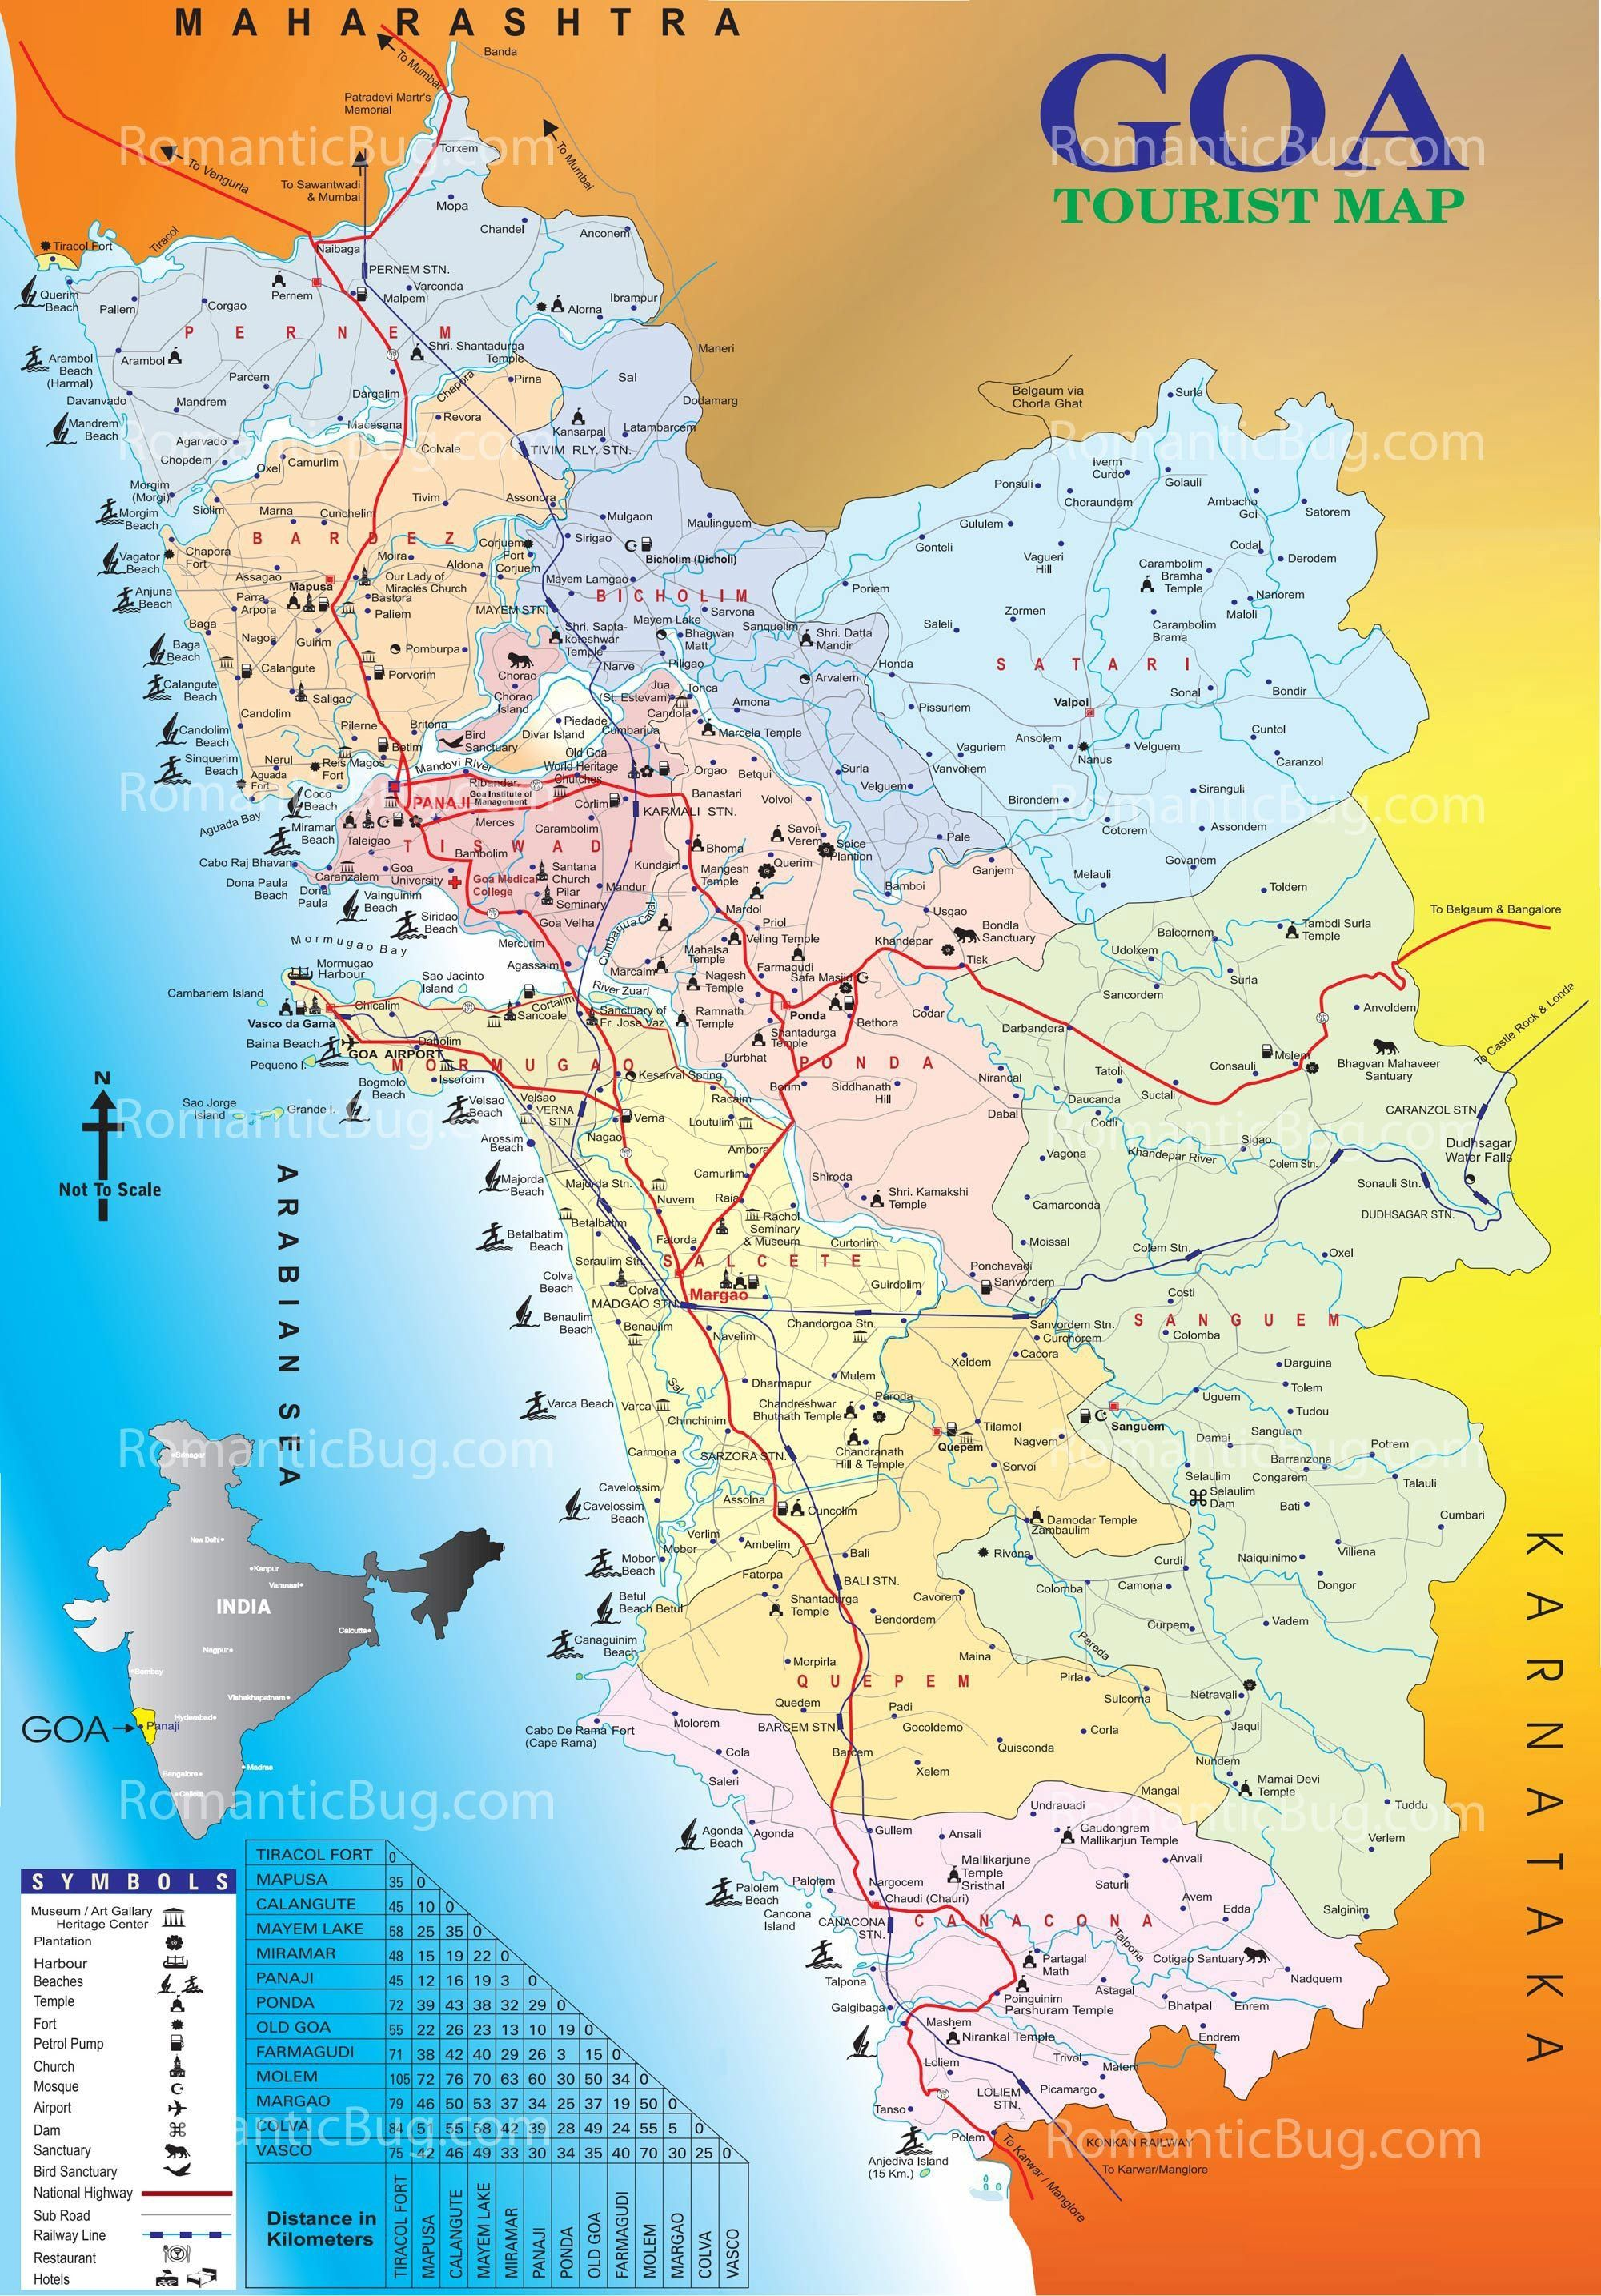 Download Free Tourist Map of Goa - Complete Goa Tourism Map